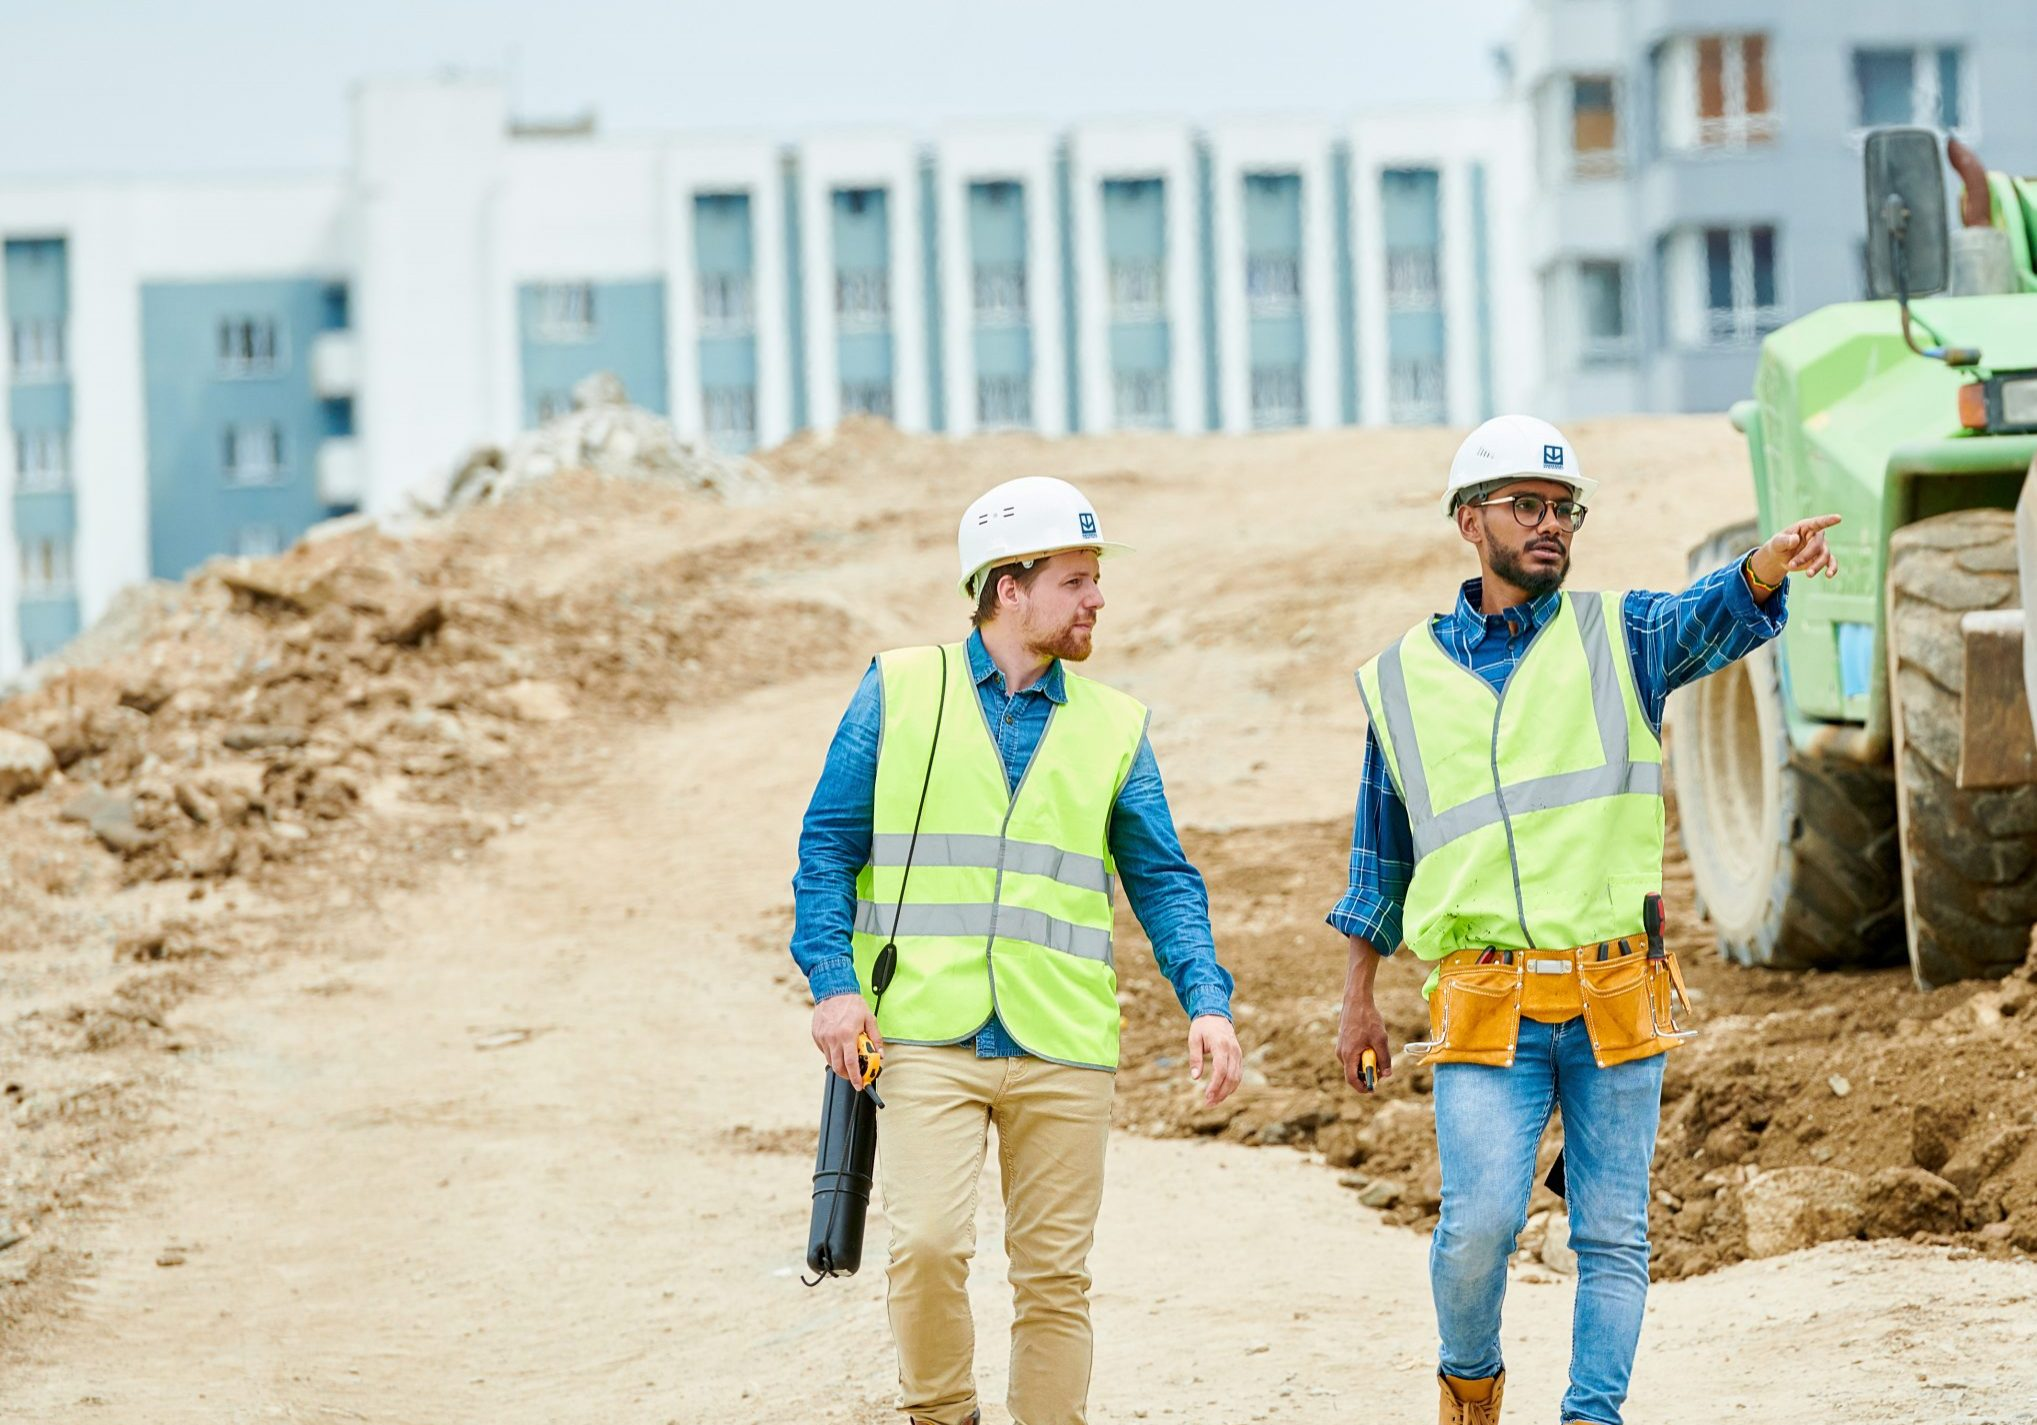 Two guys in helmets and waistcoats walking near digger and pointing at distance during inspection on construction site